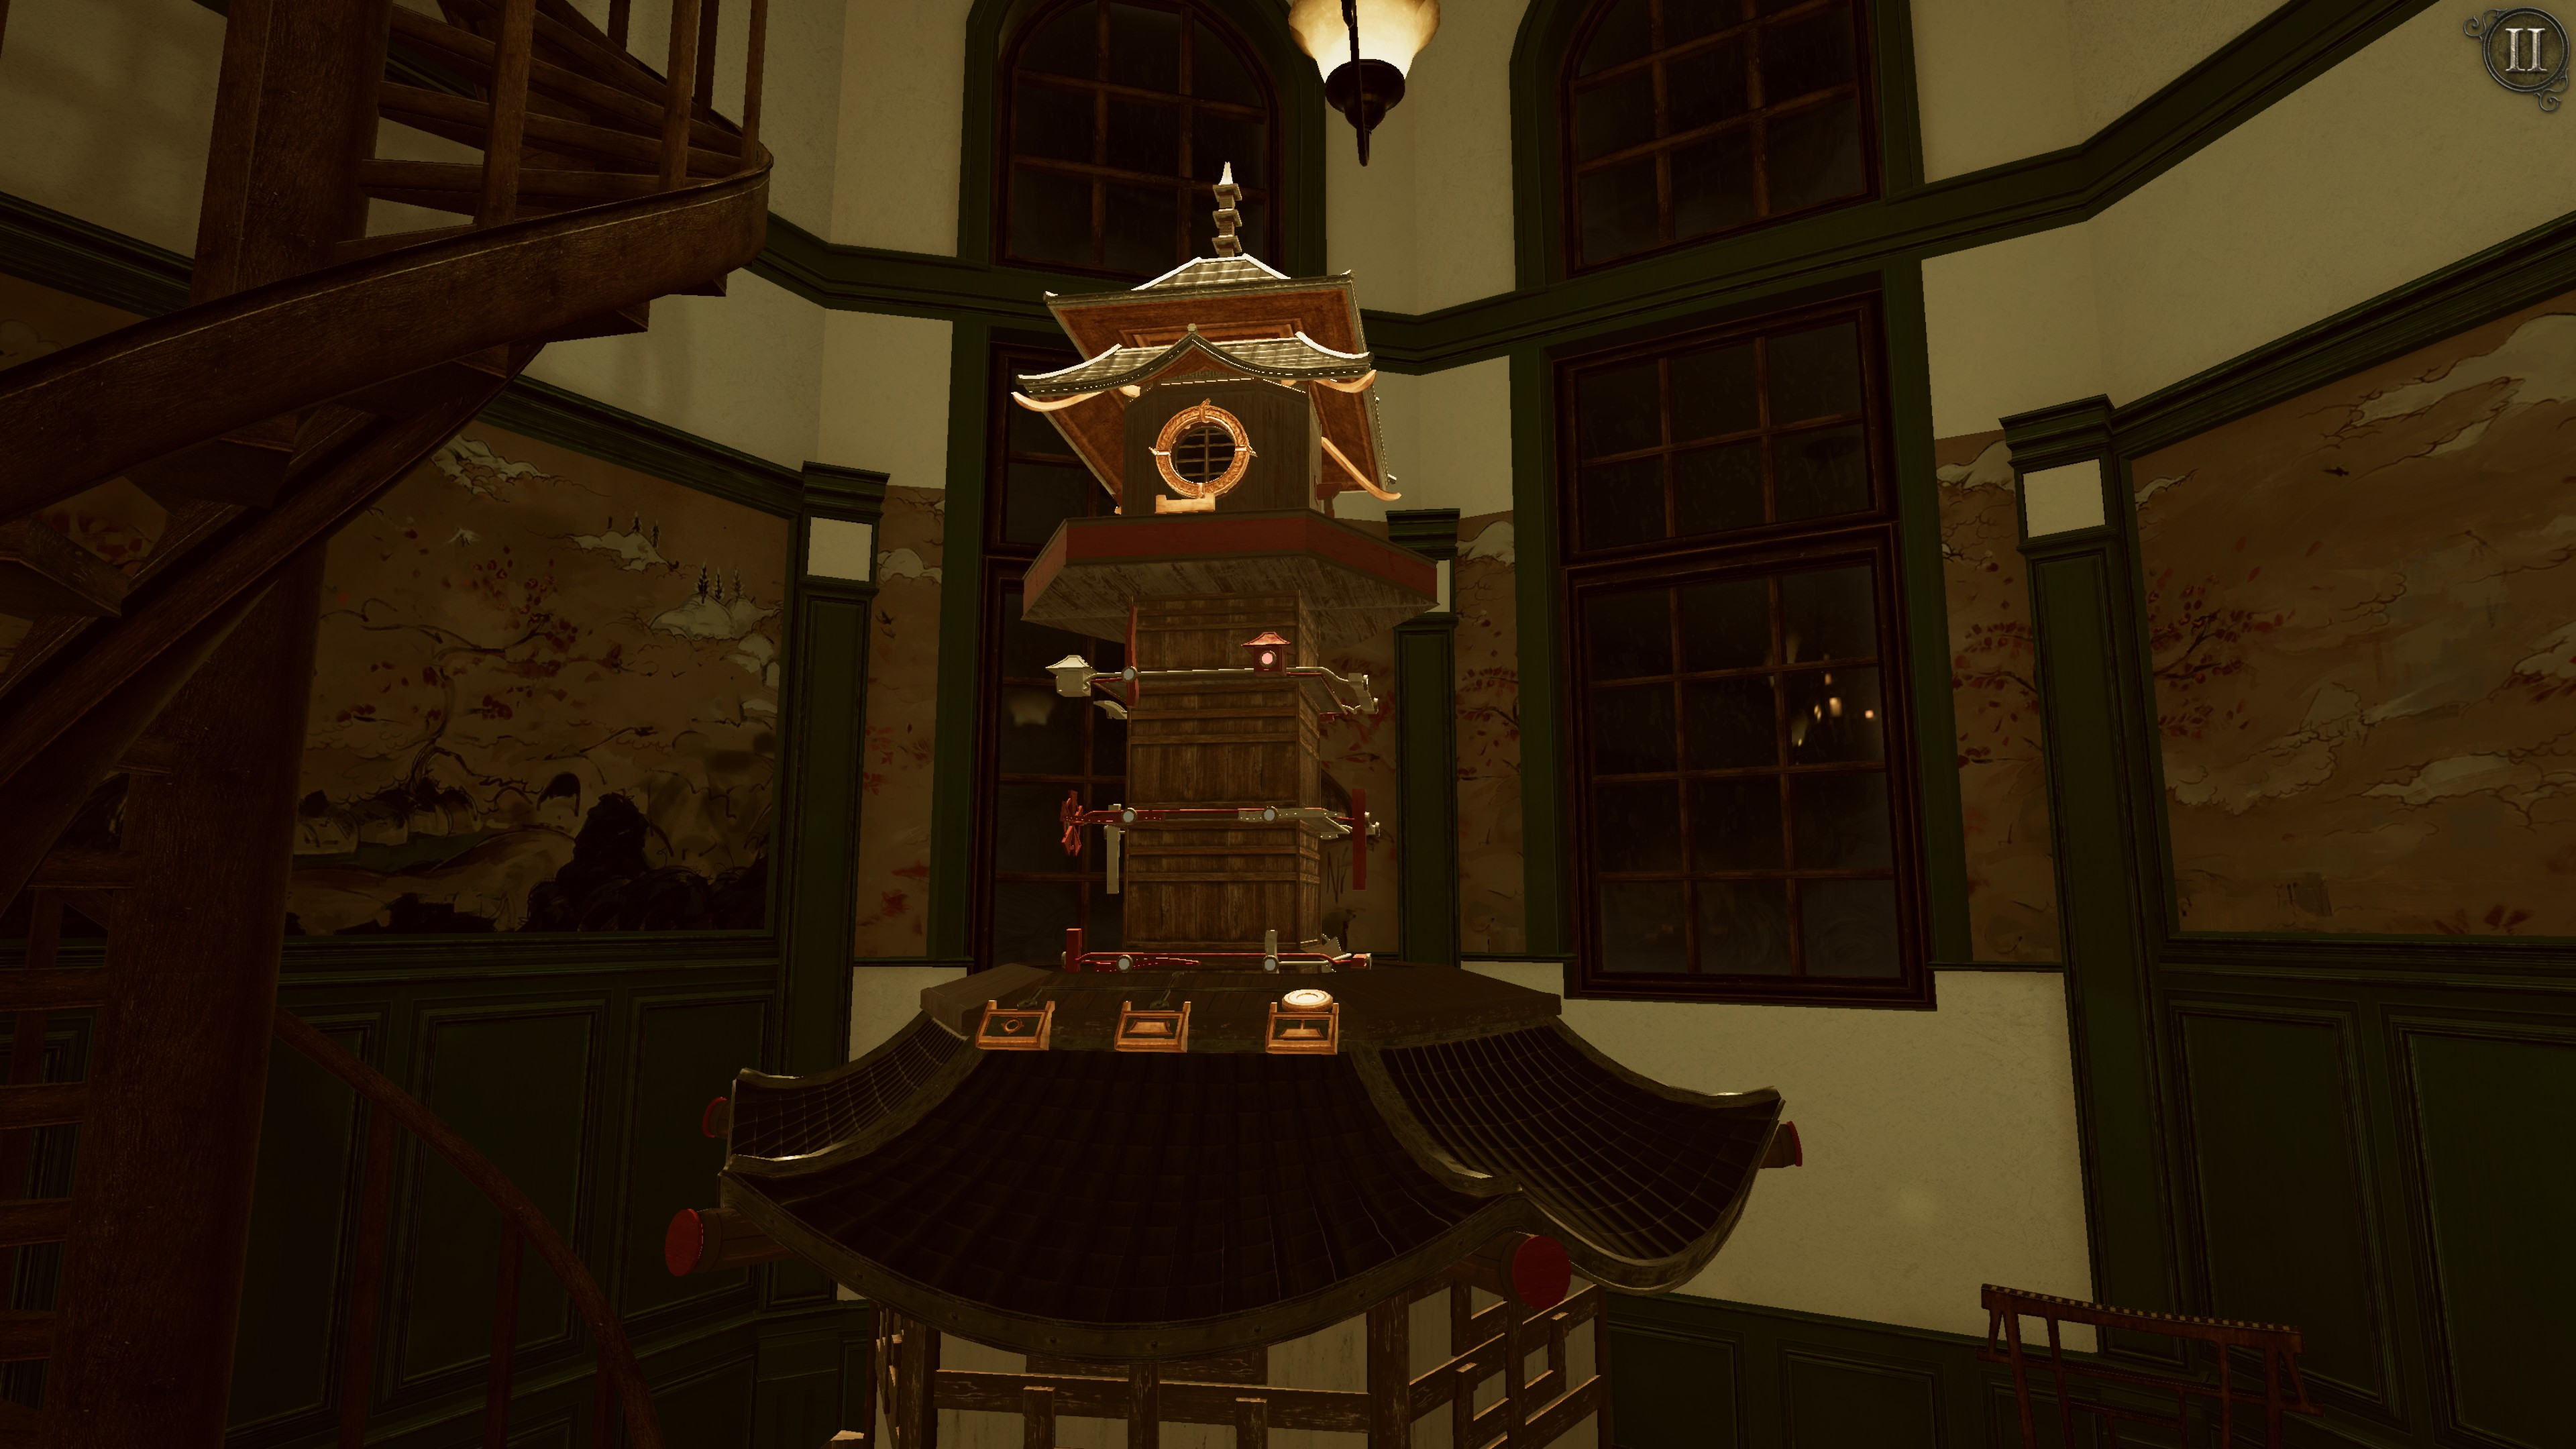 The Room 4  Old Sins. An elongated pagoda tower with a series of metal wires, switches, and levers along its midsection.